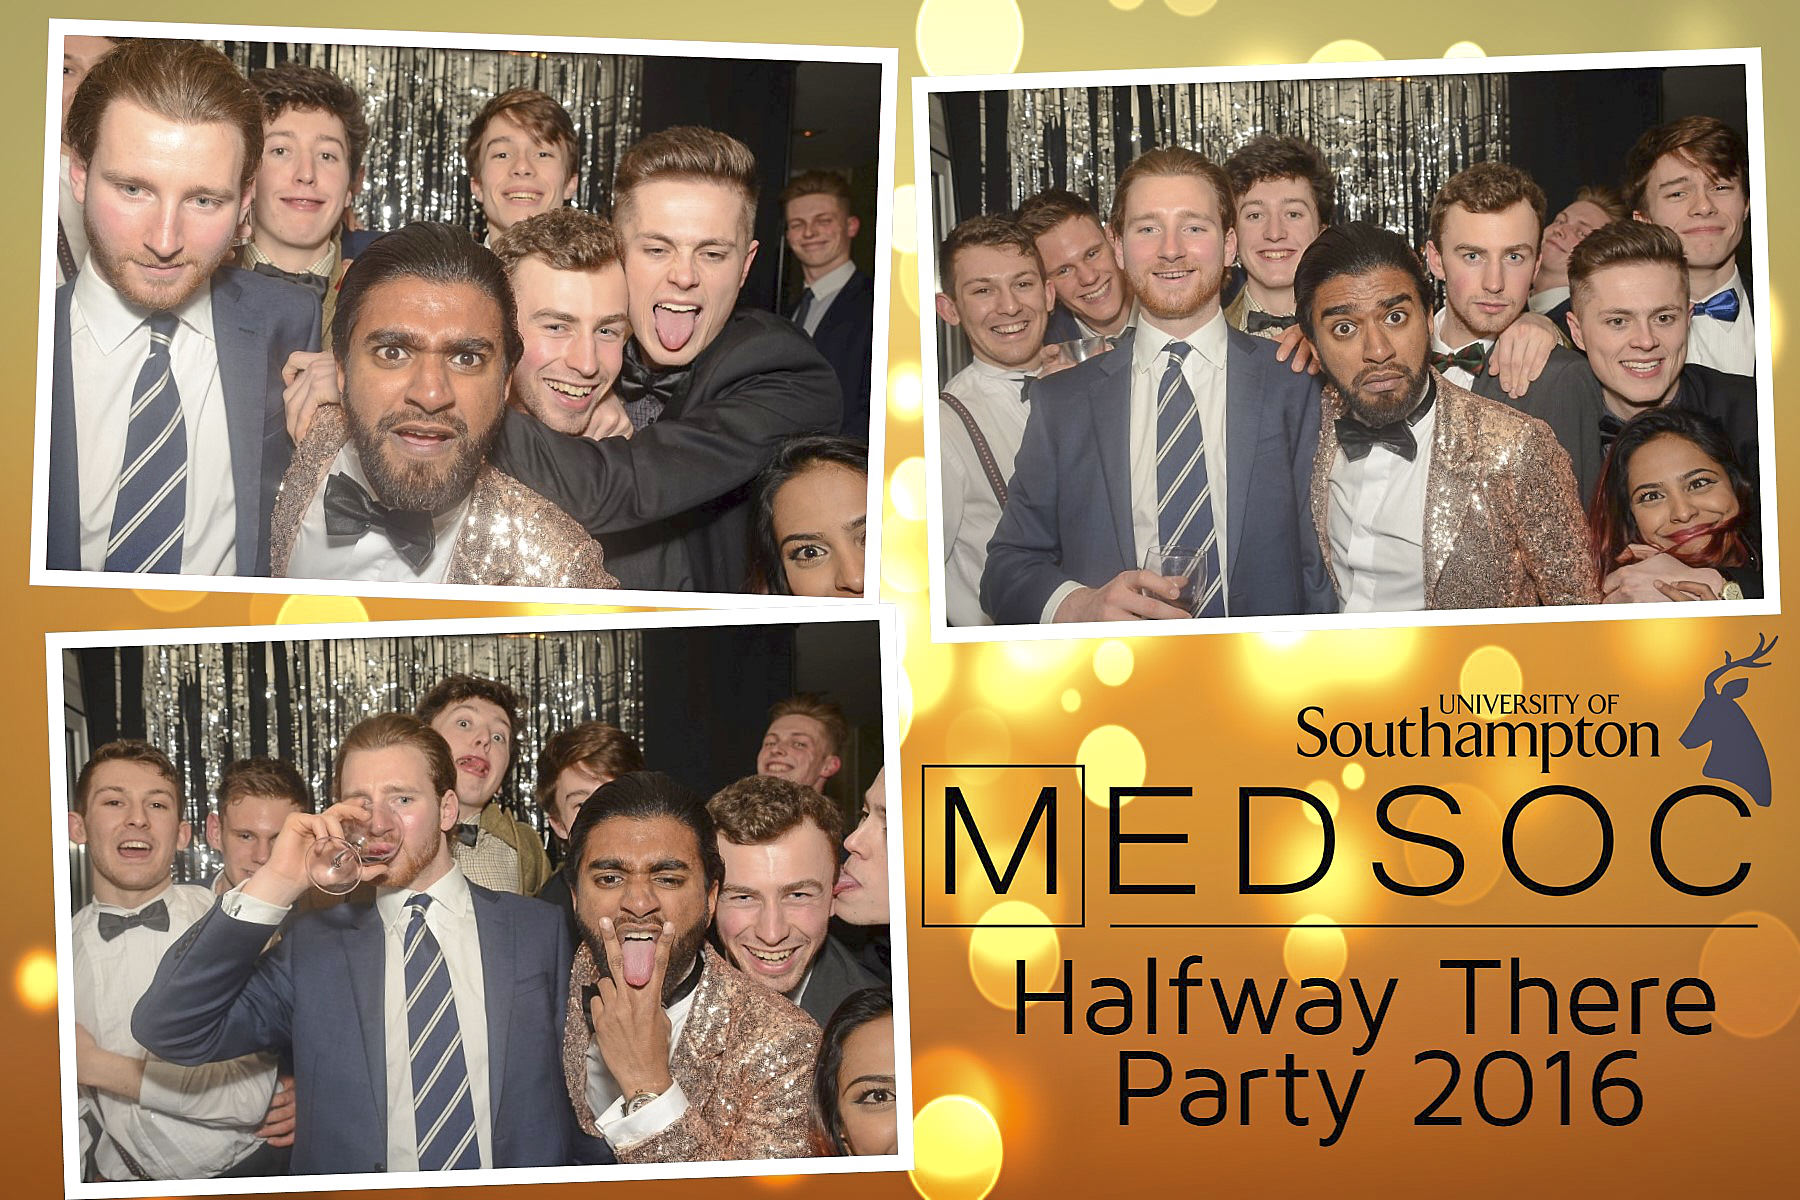 MedSoc Halfway There Party 2016 DS003719.jpg